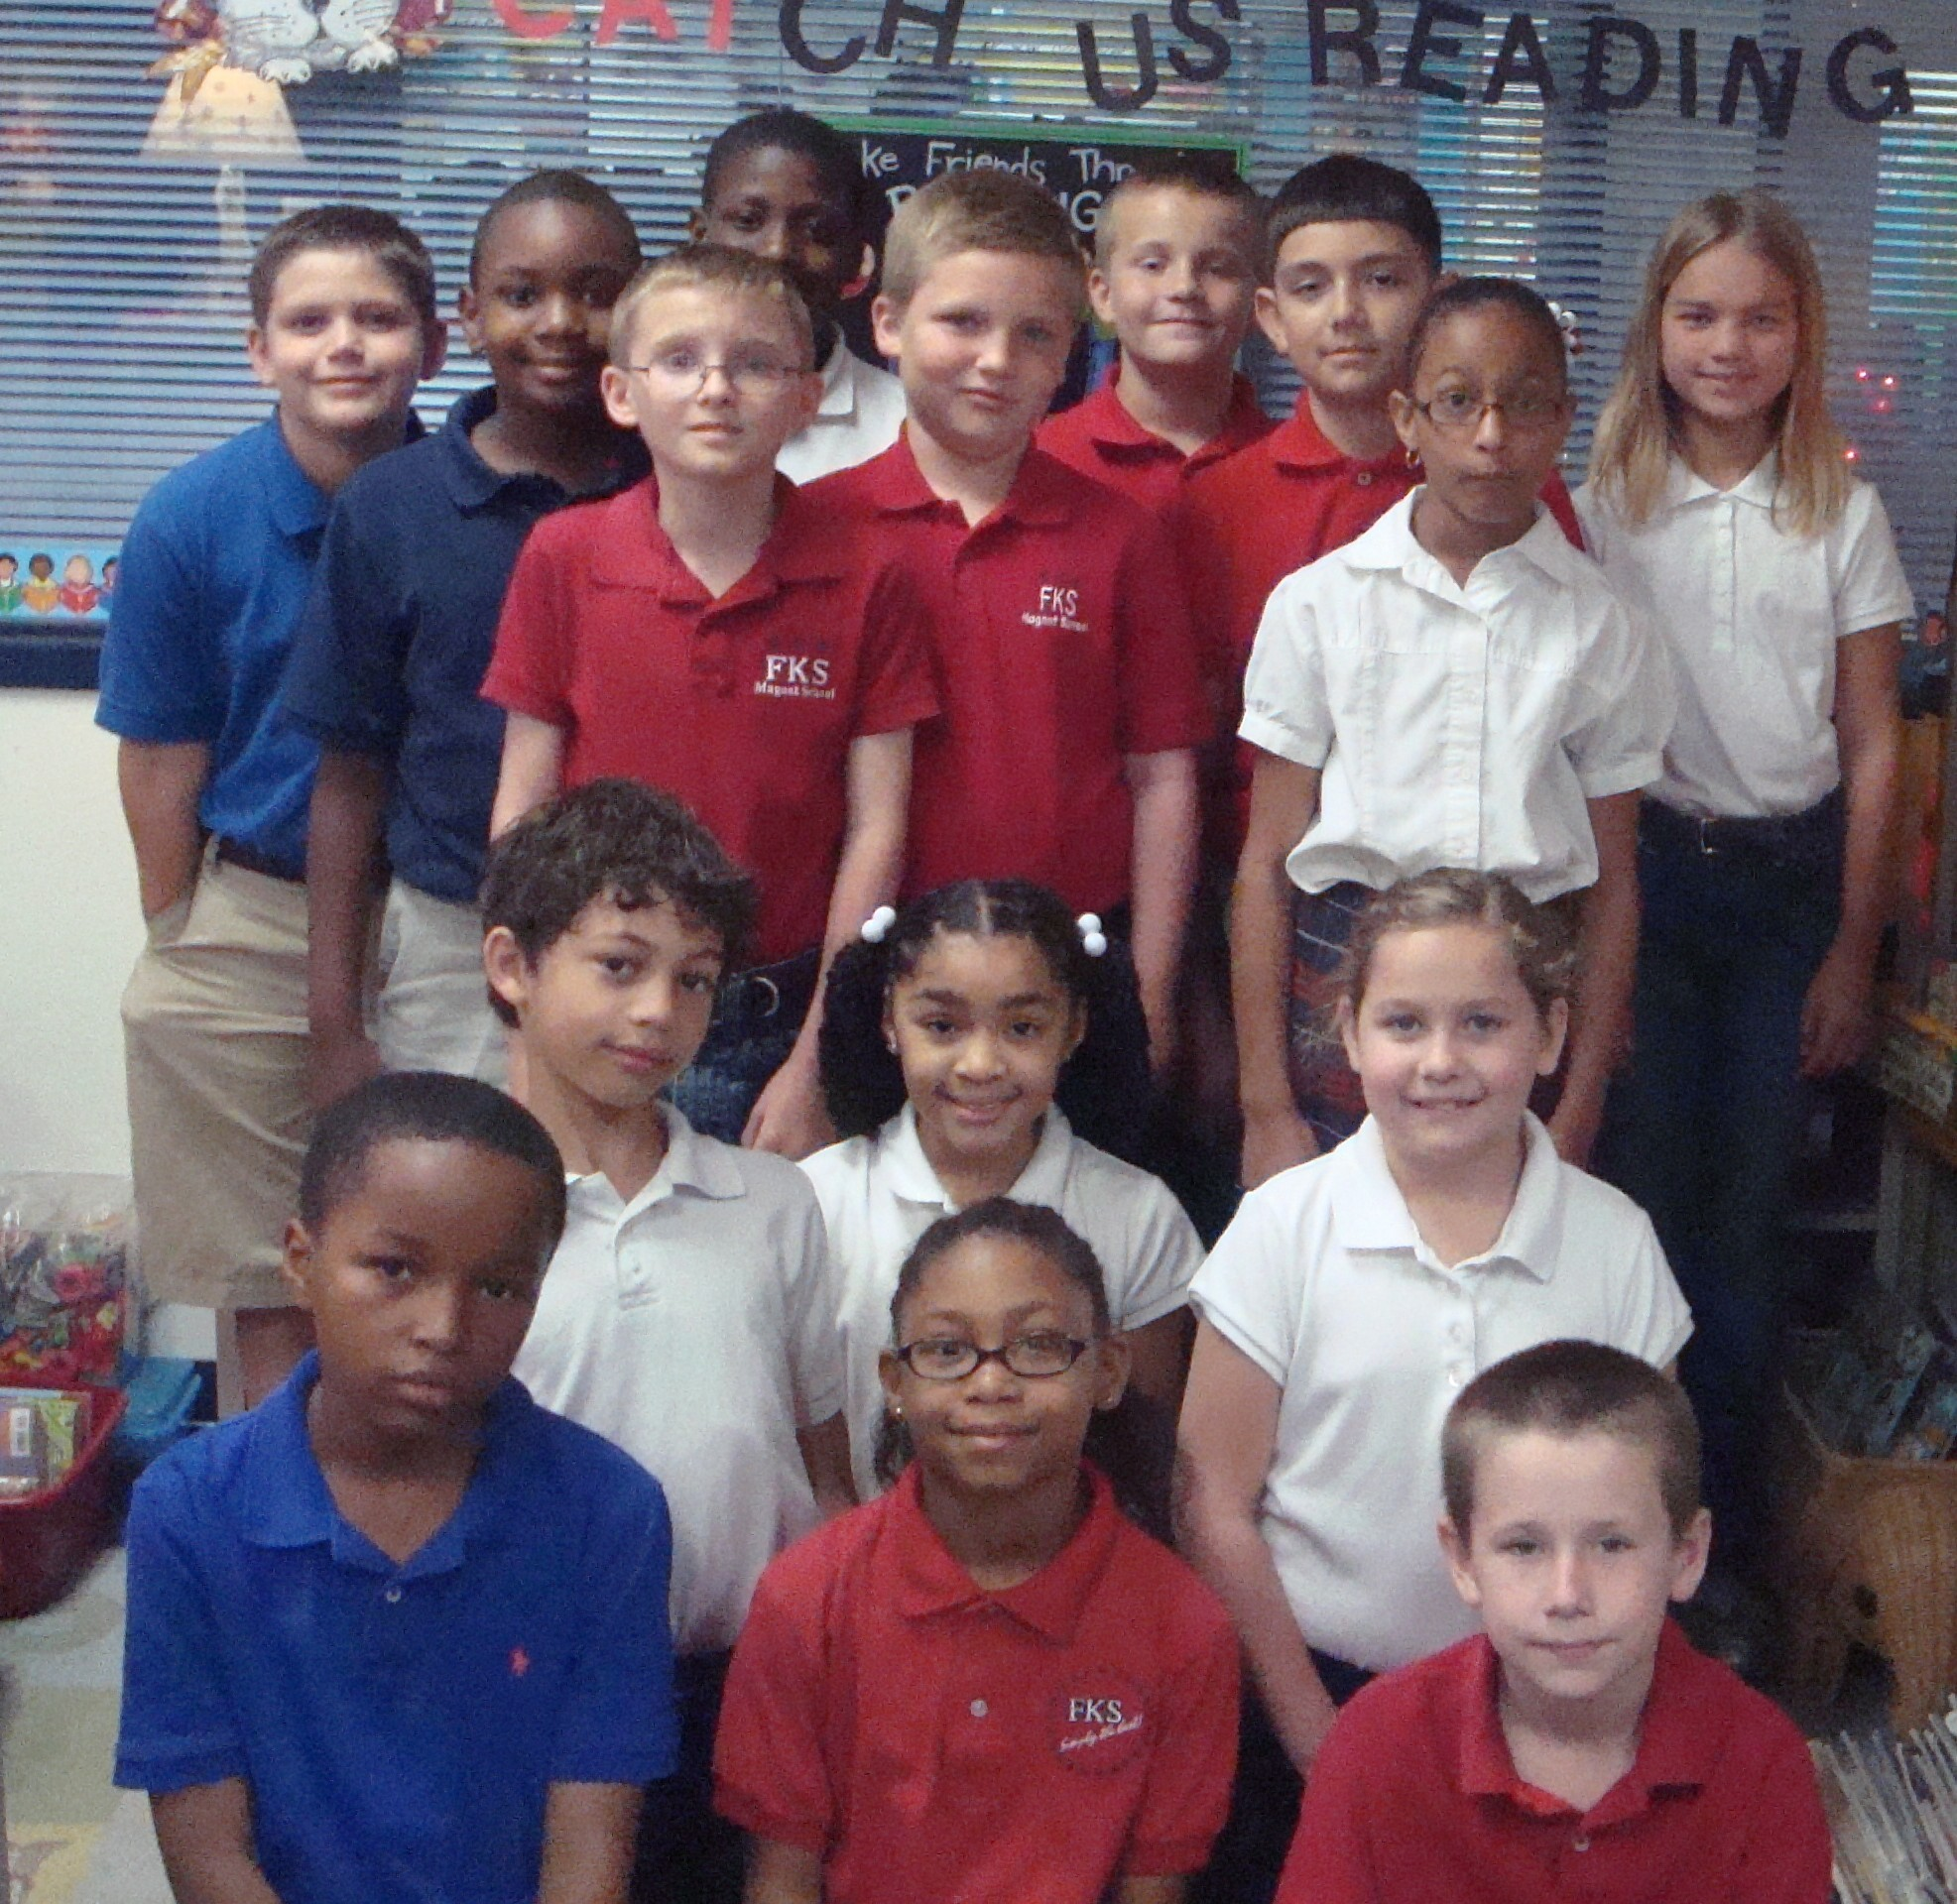 Third graders rack up reading